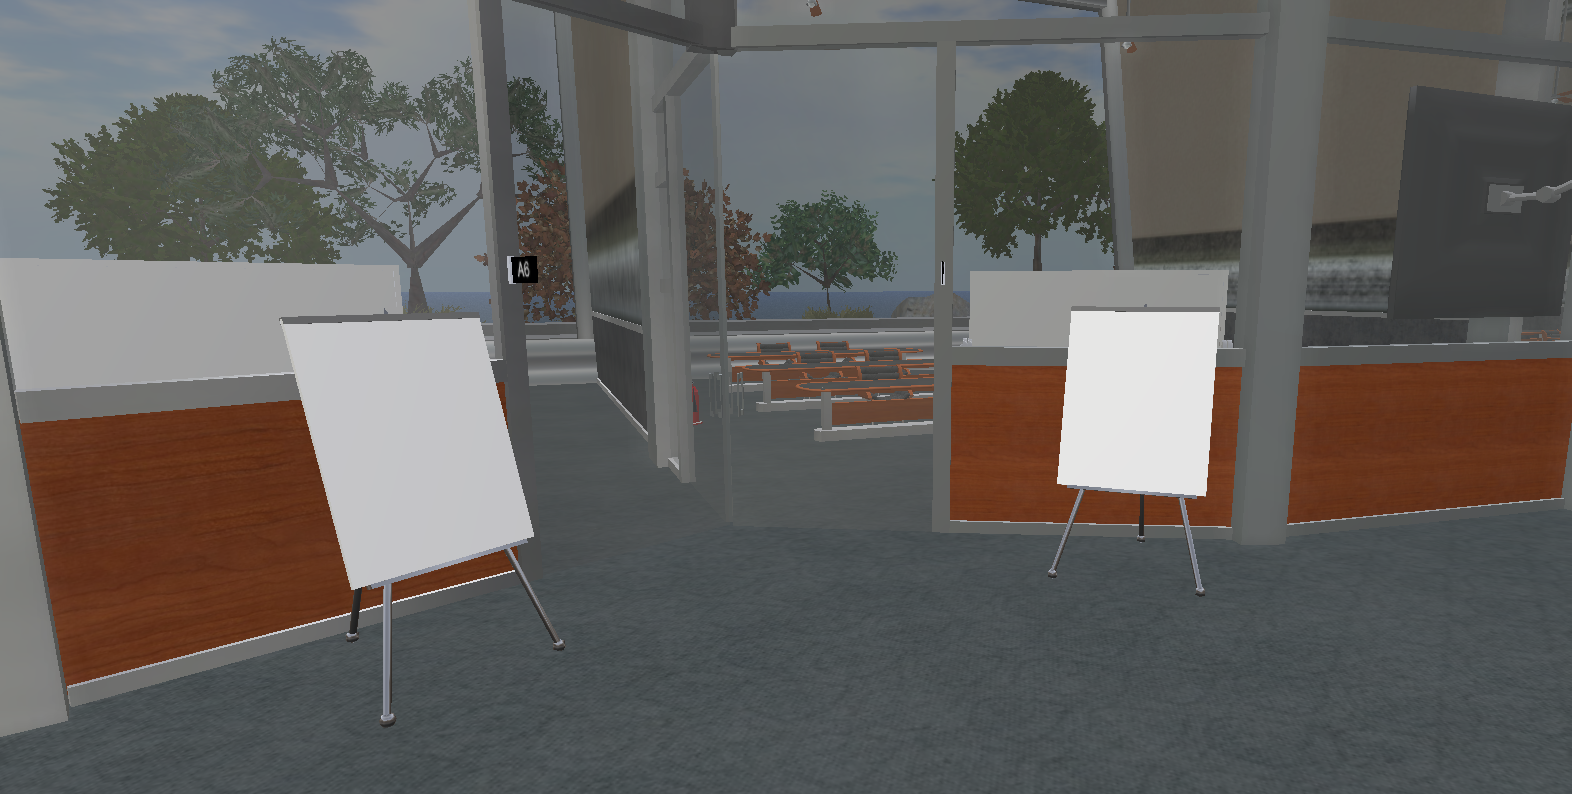 view of 2 virtual classrooms with blank signs outside and trees visible in the background though large glass windows